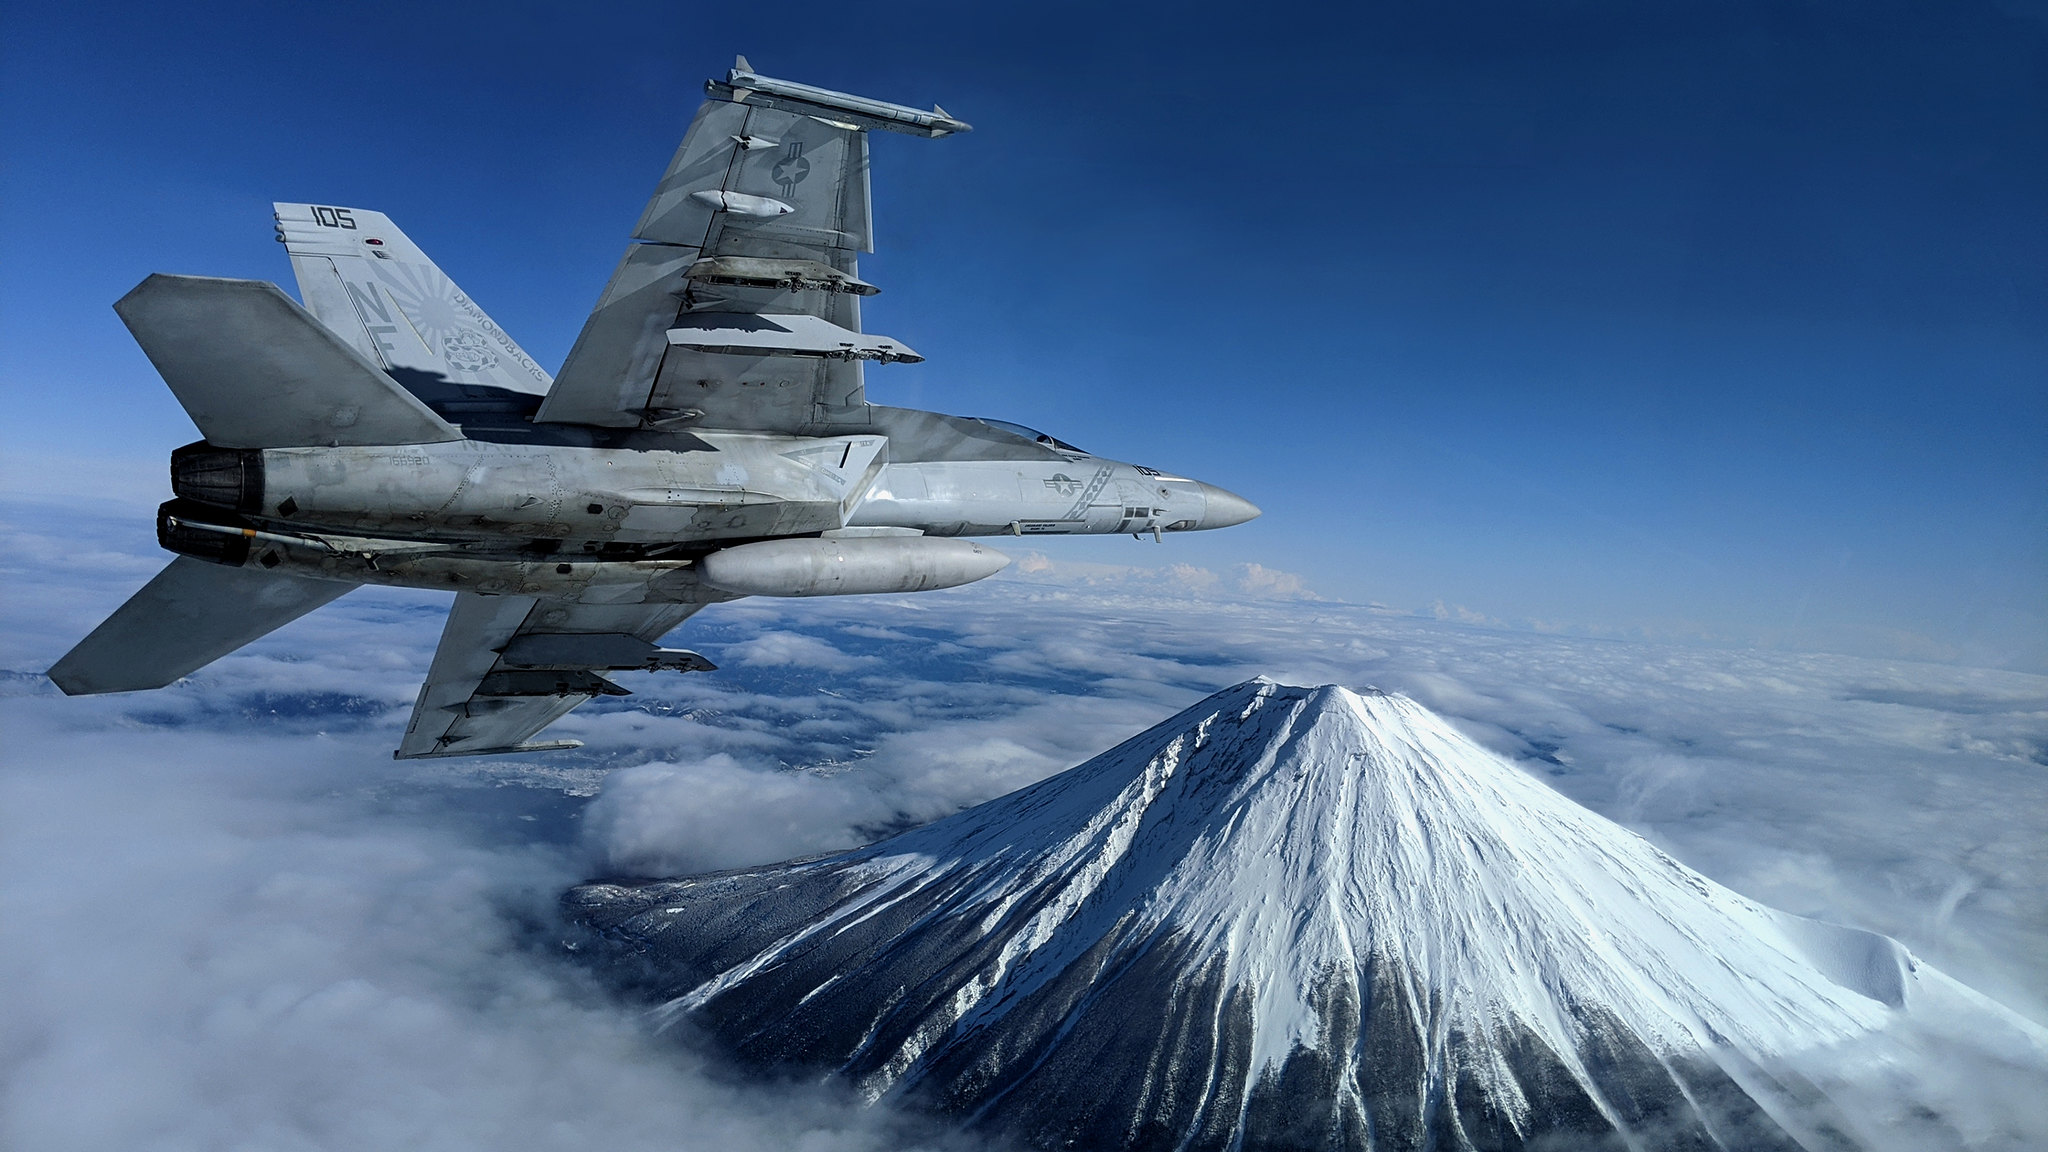 An F/A-18F Super Hornet assigned to Strike Fighter Squadron 102 conducts flight operations near Mount Fuji on Jan. 29, 2020, in Japan. (Lt. Alex Grammar/Navy)